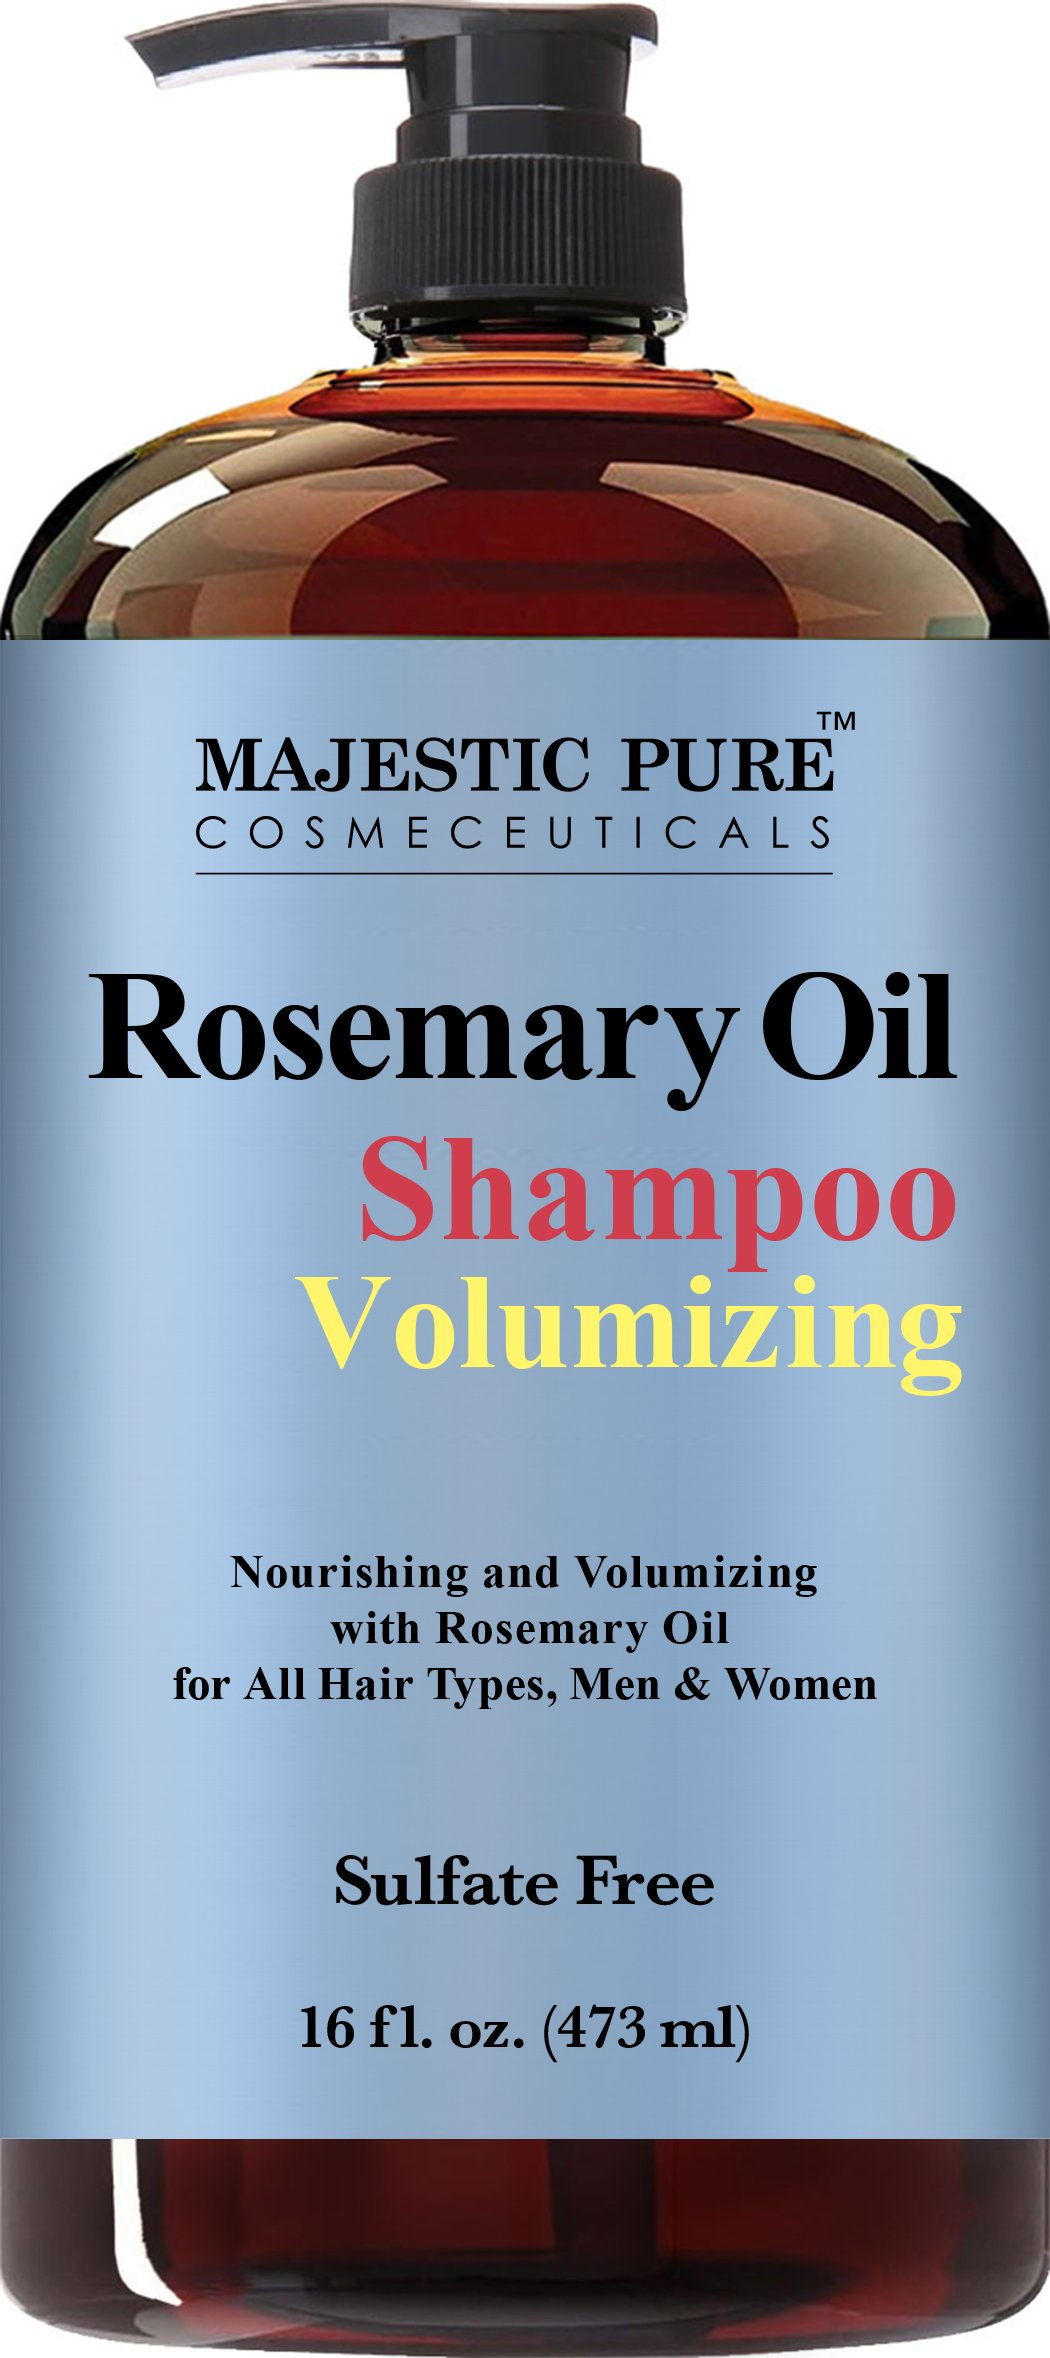 Majestic Pure Rosemary Shampoo, Sulfate Free with 2.5% Pure Rosemary Essential Oil, Growth Promoting Anti Hair Loss for Men & Women - 16 fl oz by Majestic Pure